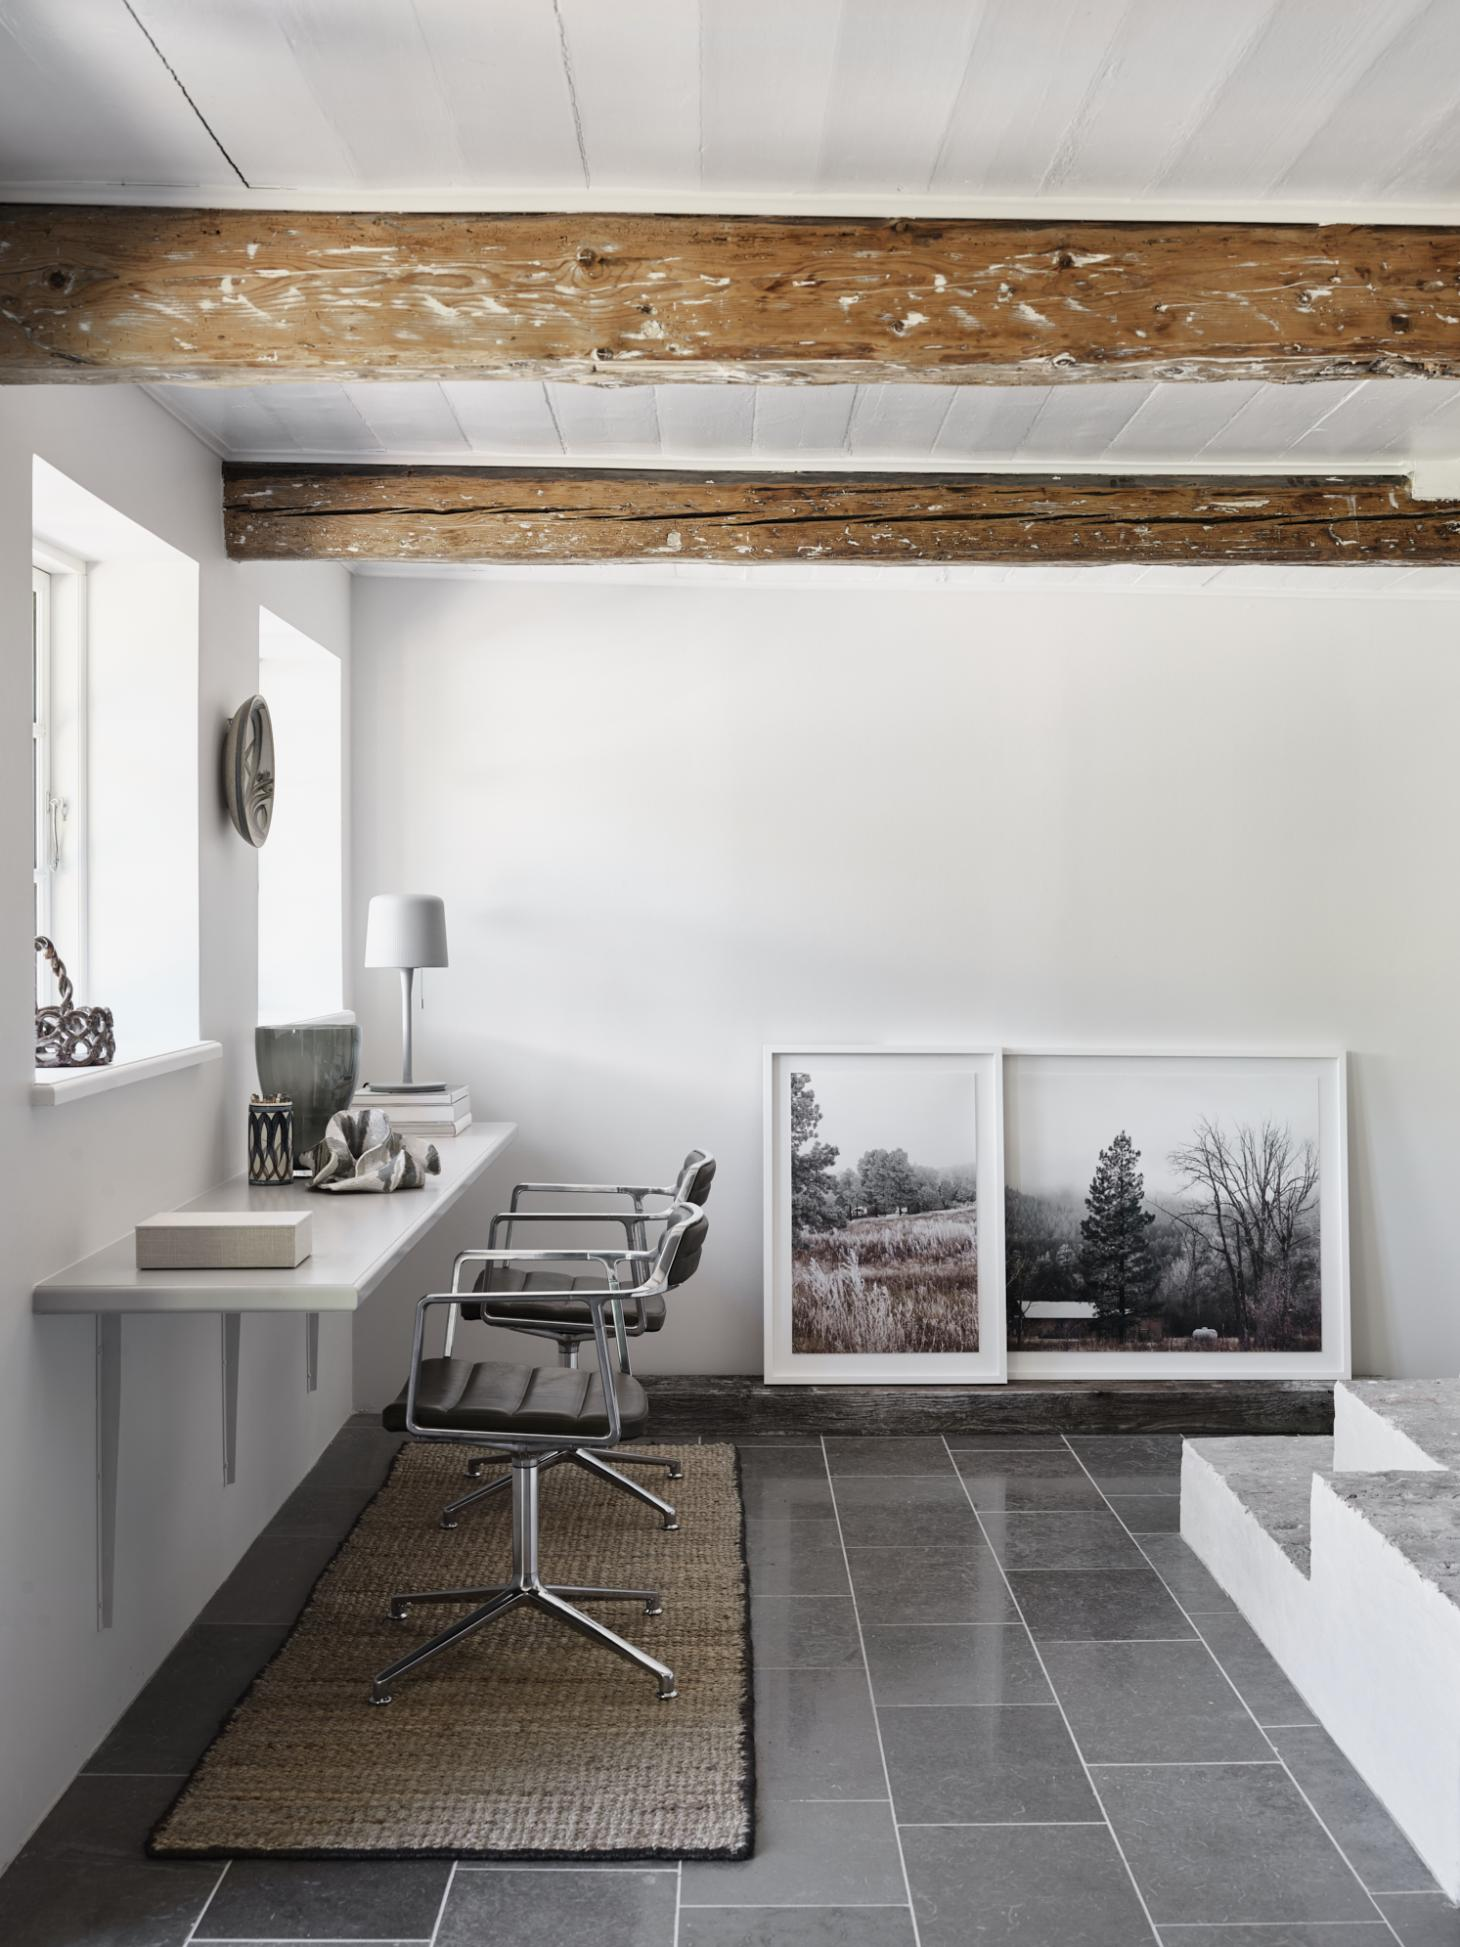 Study in the Vipp Farmhouse with two aluminium office chairs by the window, black and white framed photographs on the floor and visible wooden beams on the ceiling